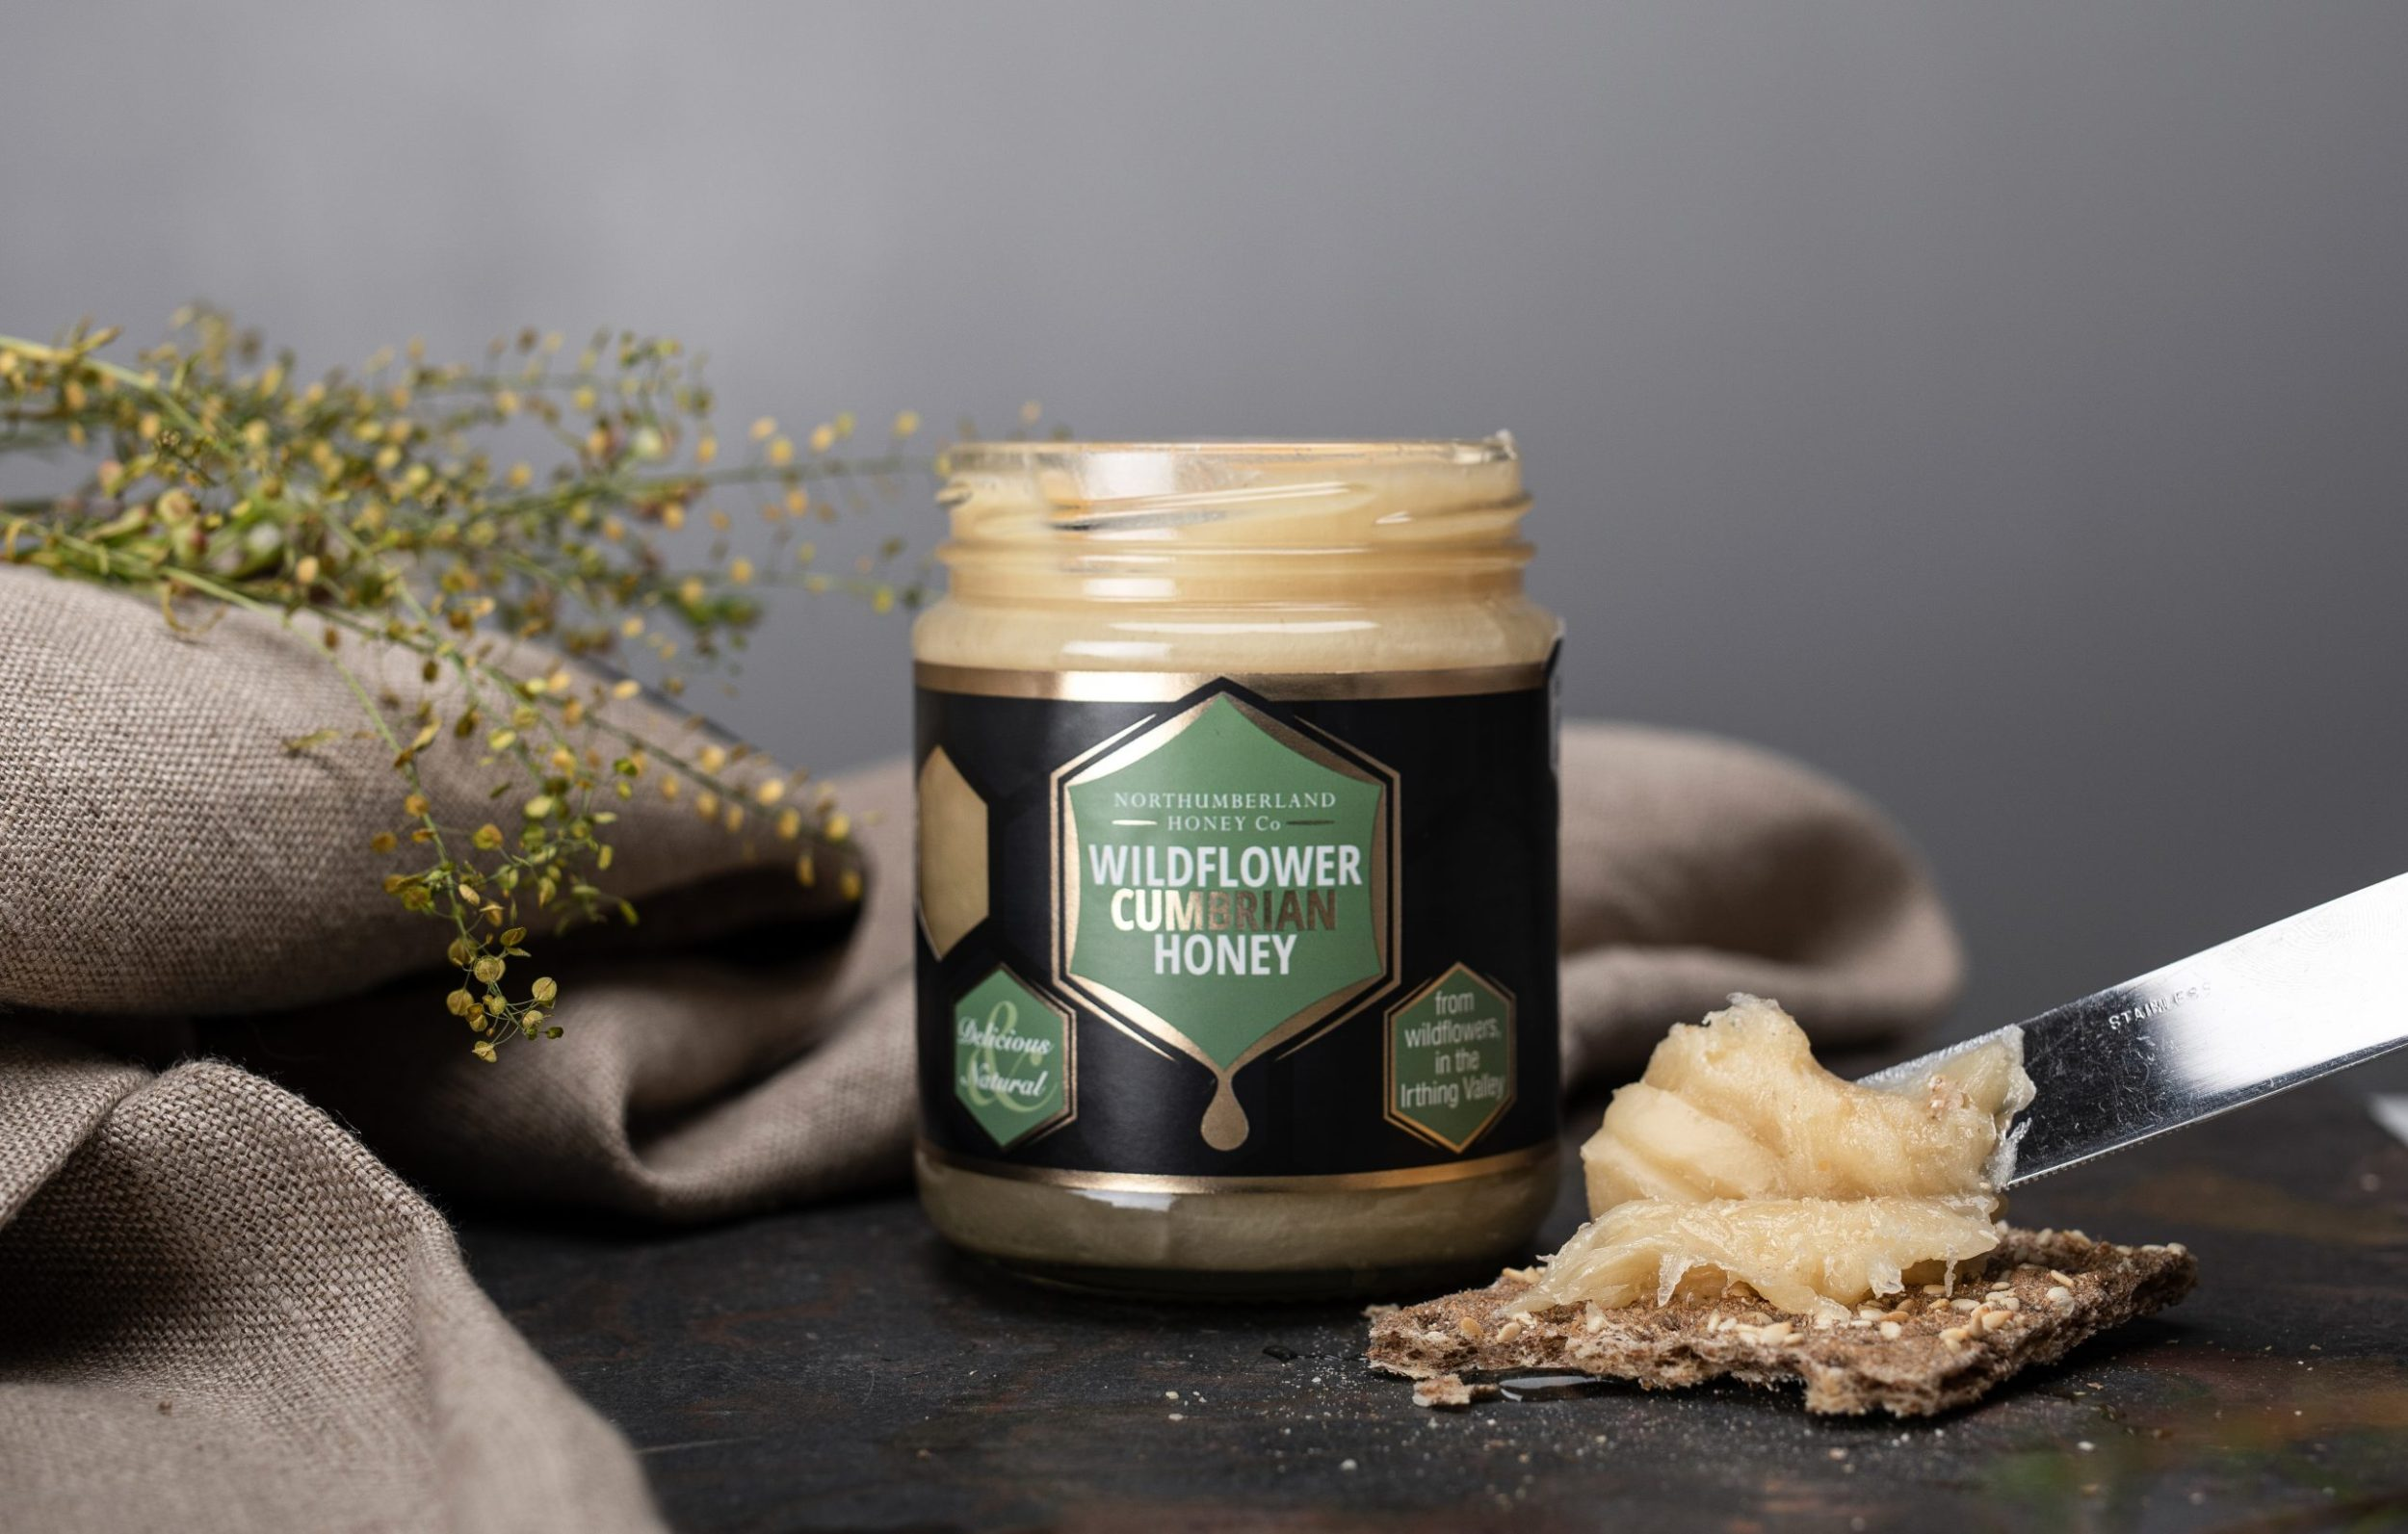 Hadrian Wall Honey Cumbrian Honey | Northumberland Honey